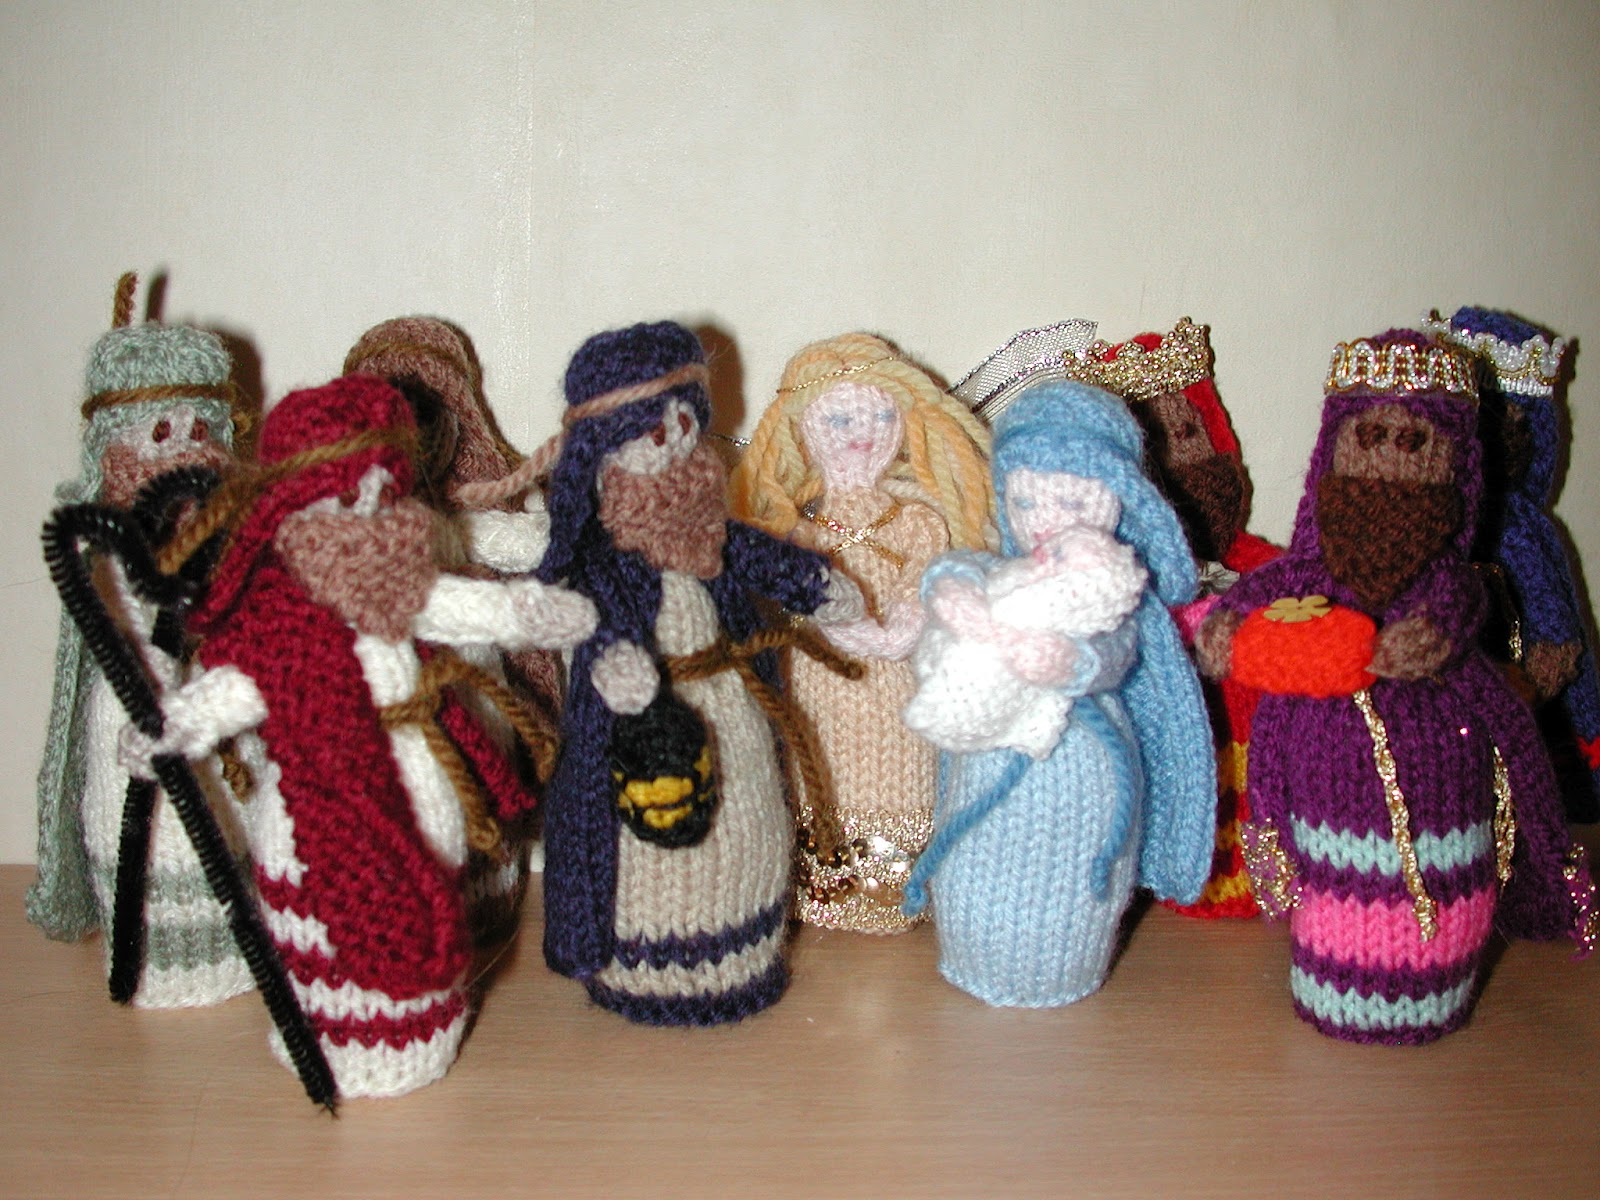 Butterfly Cottage Arts: Knitted Nativity Sets